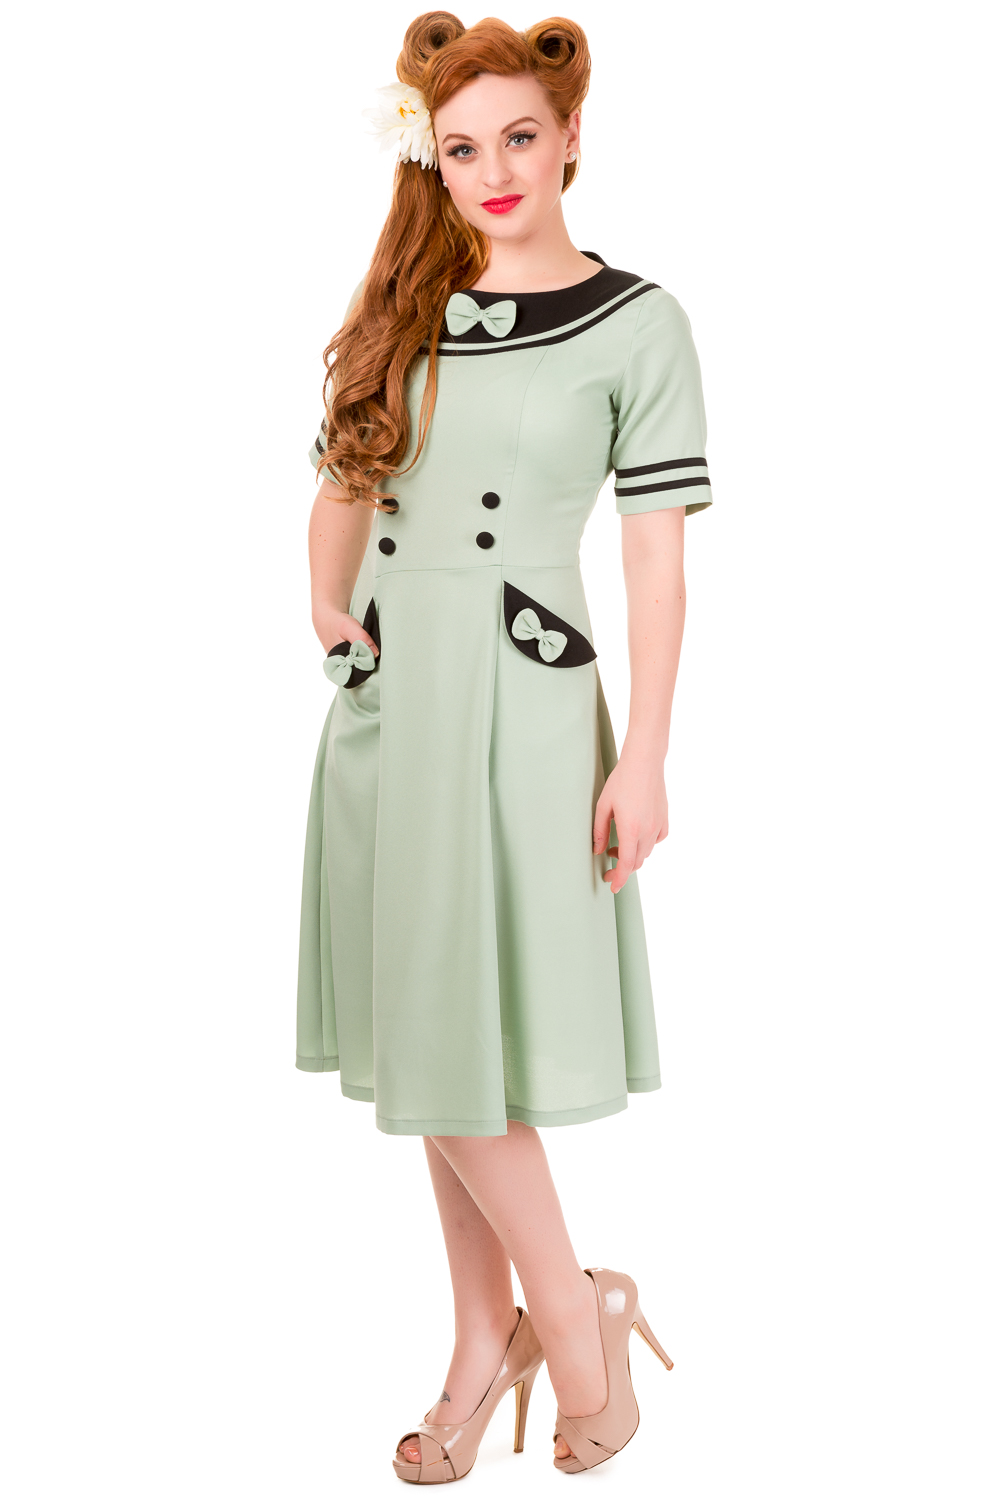 retro style plus size dresses uk gaussianblur